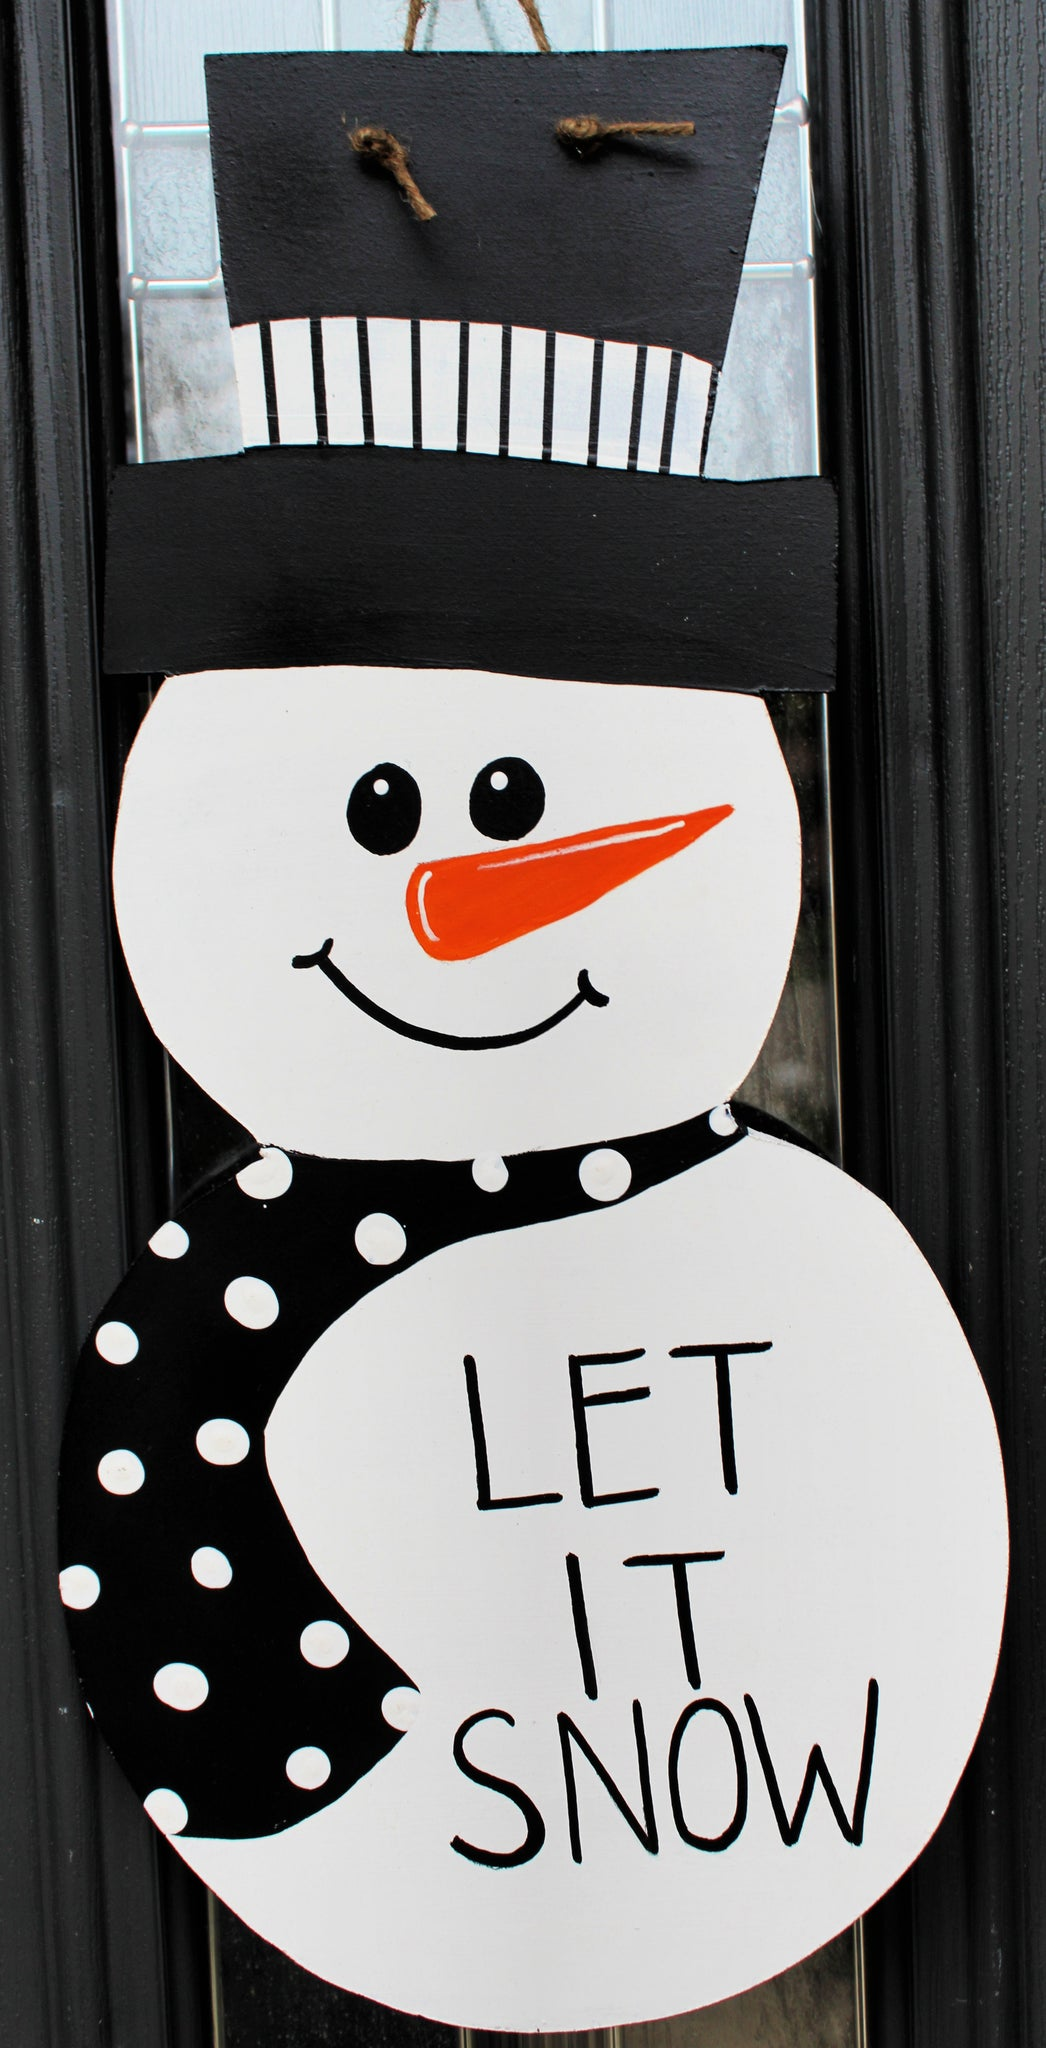 Snowman - Let it Snow